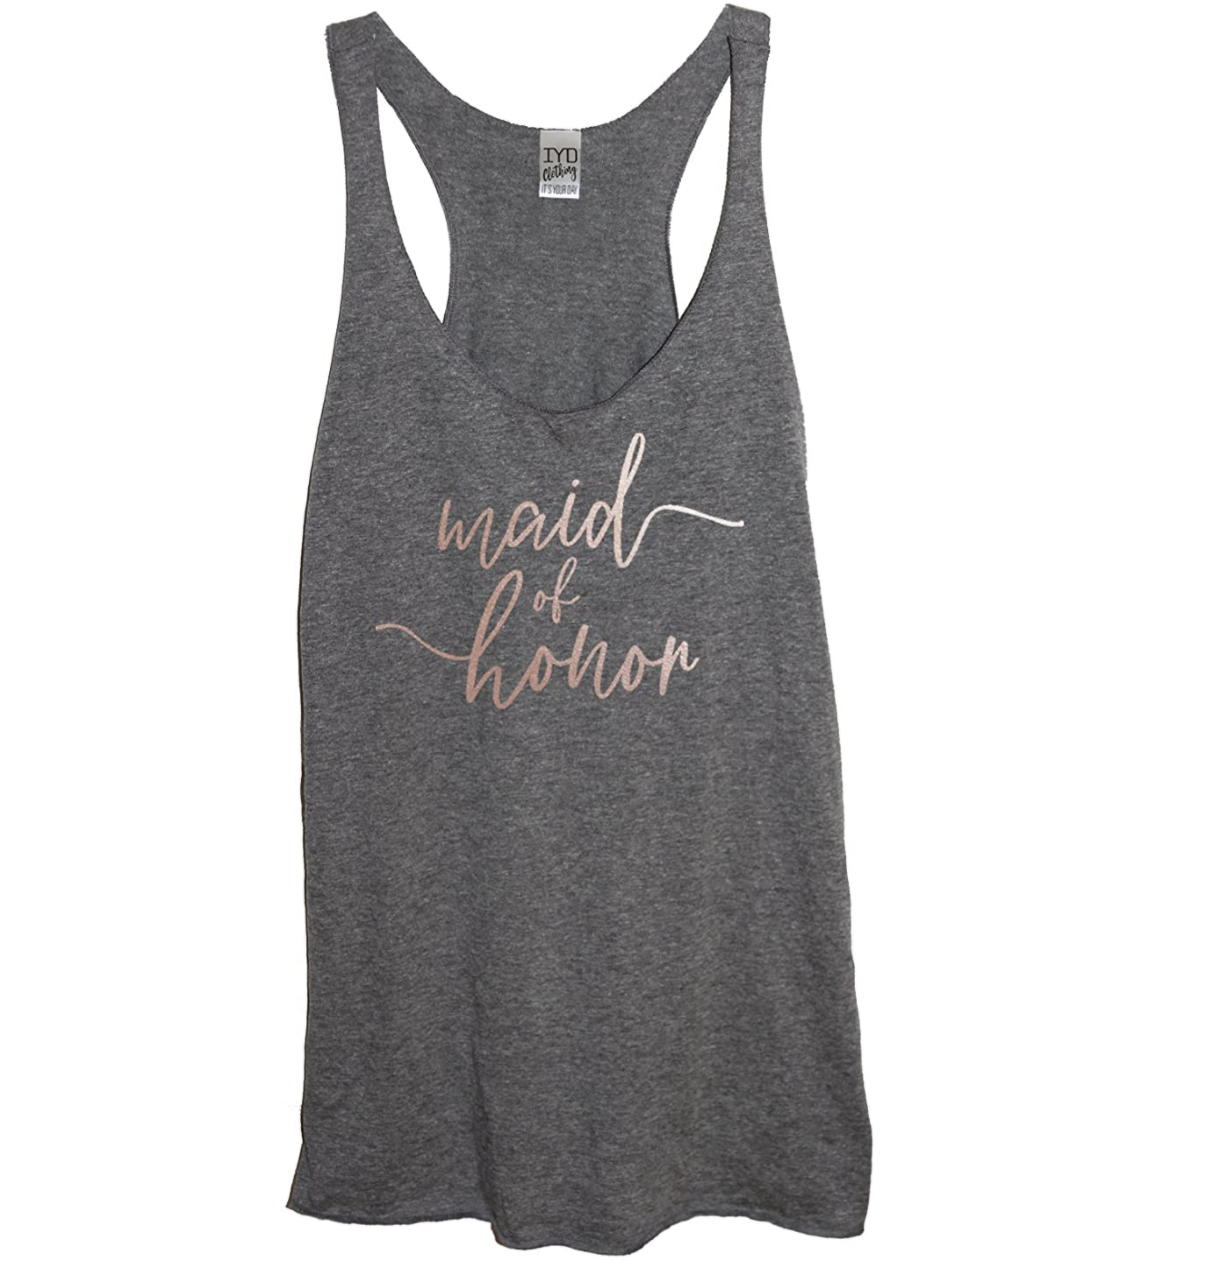 maid-of-honor-gifts-tank